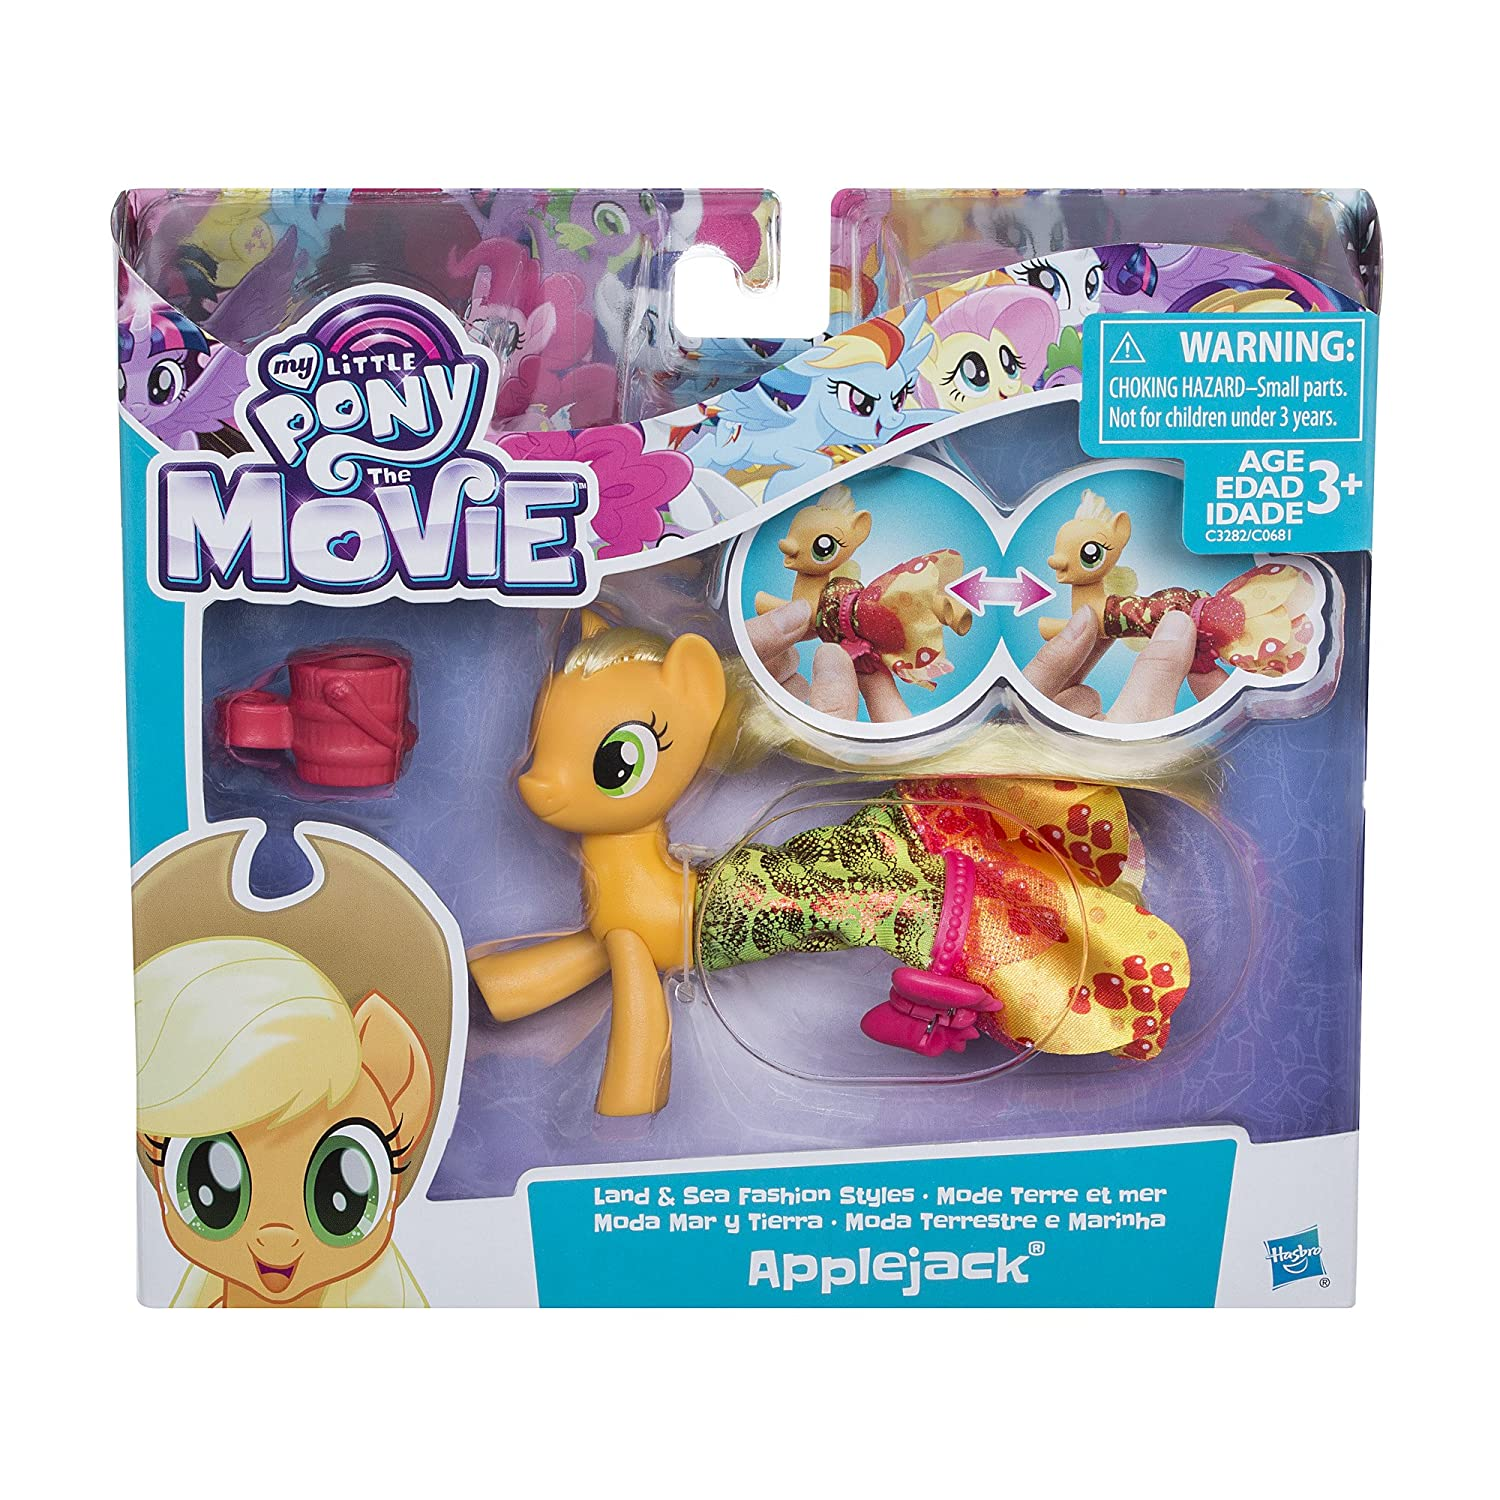 Toys & Hobbies Baby Gyms & Play Mats My Little Pony Twilight Sparkle Movie Land & Sea Pony Fashion Style Toy Playset